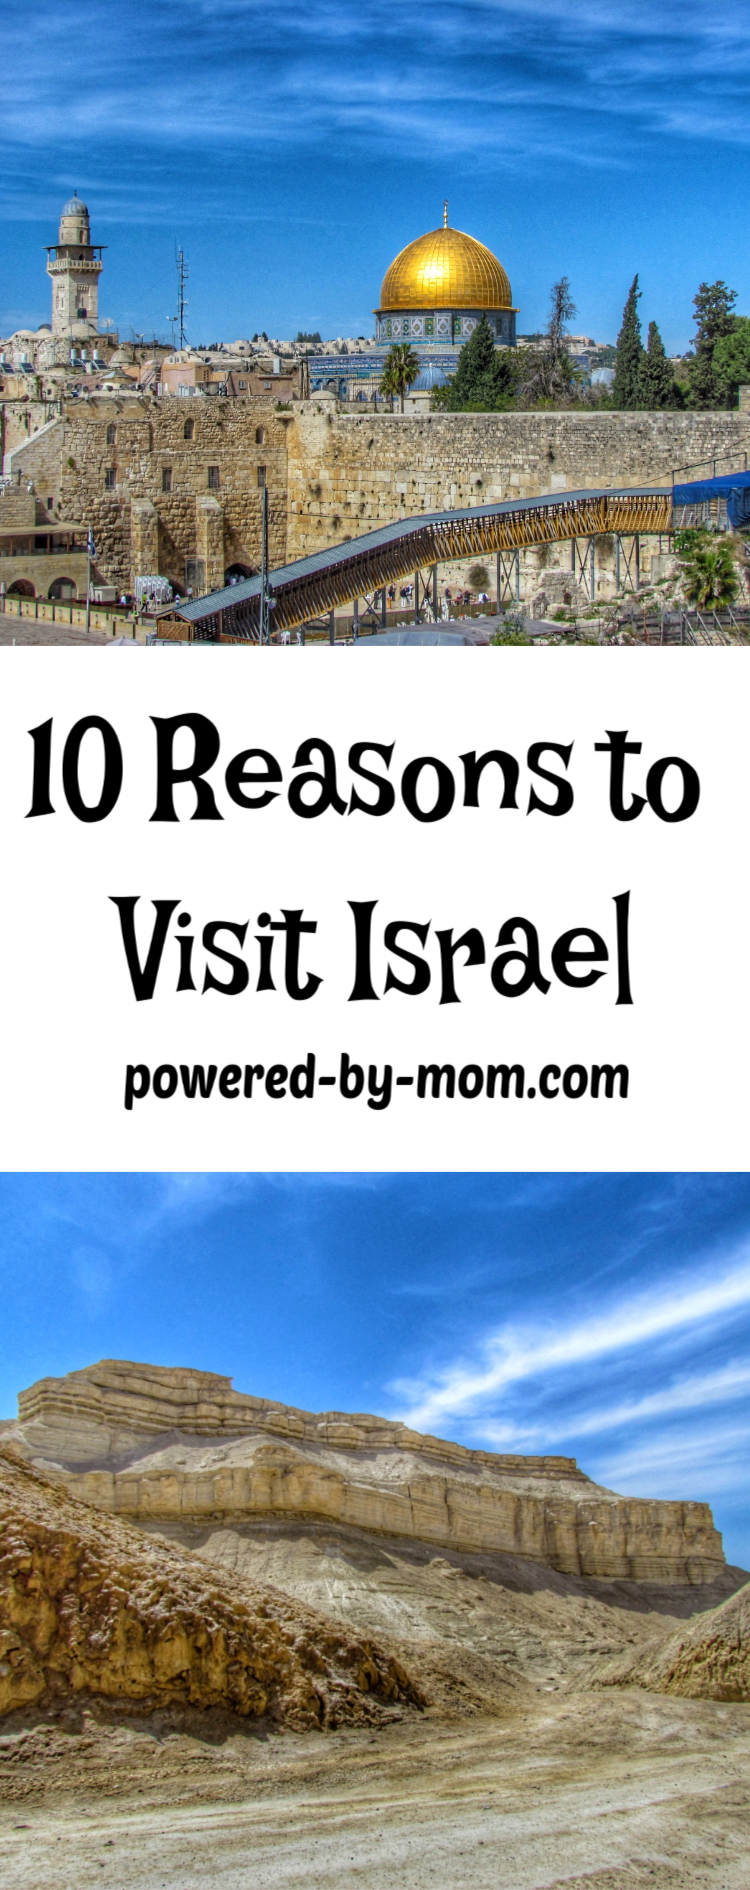 Have you ever dreamed of taking a vacation to visit Israel? This country is a place rich in history and great beauty. Learn about ten great reasons to head there on your next adventure.